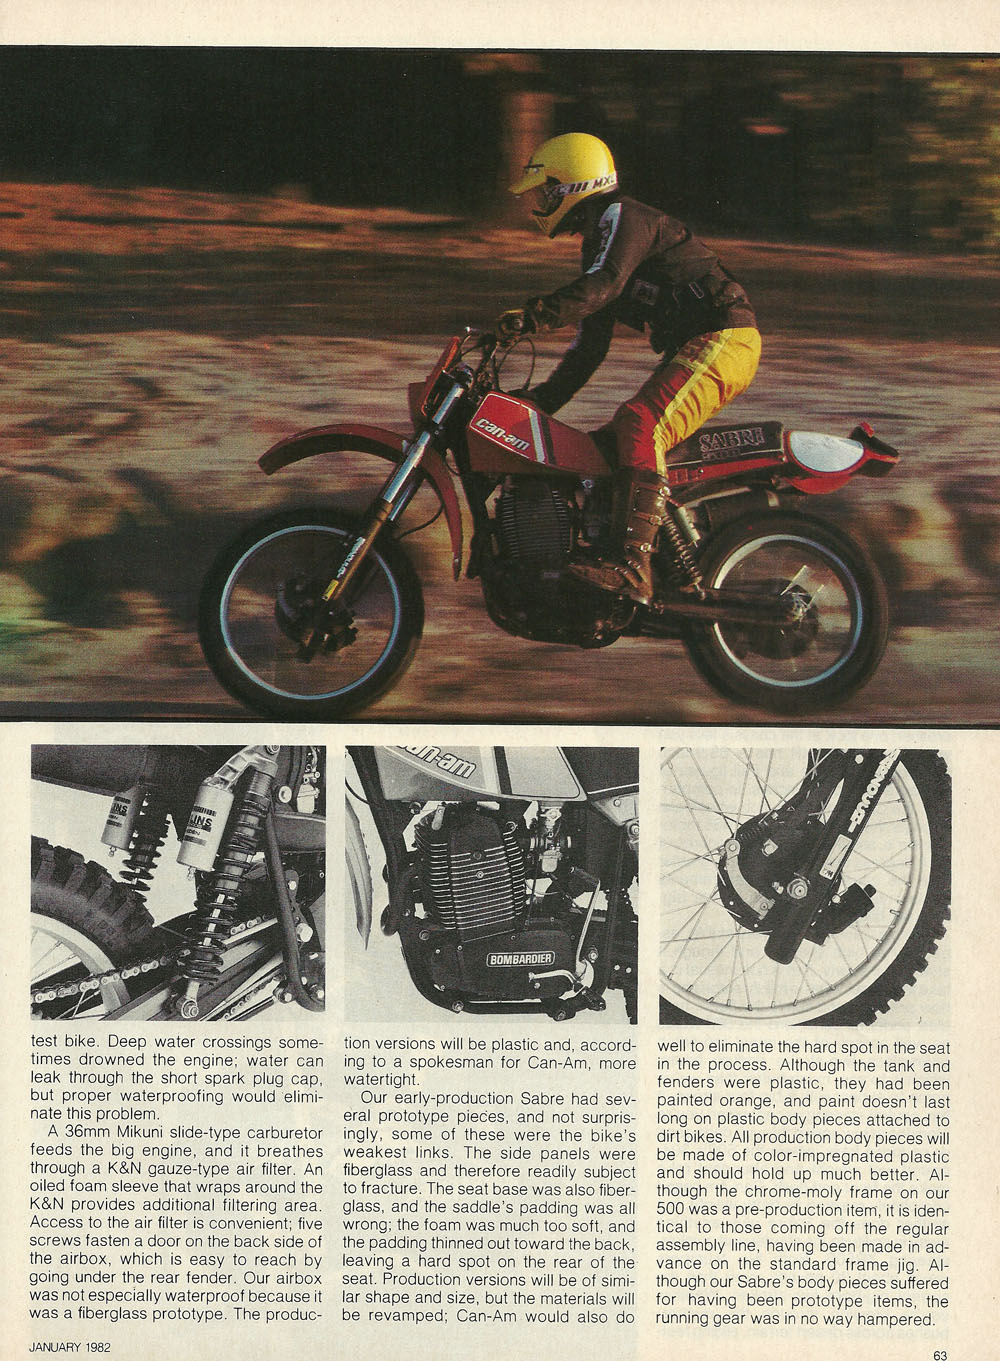 1982 Can-am 500 Sabre road test 03.jpg